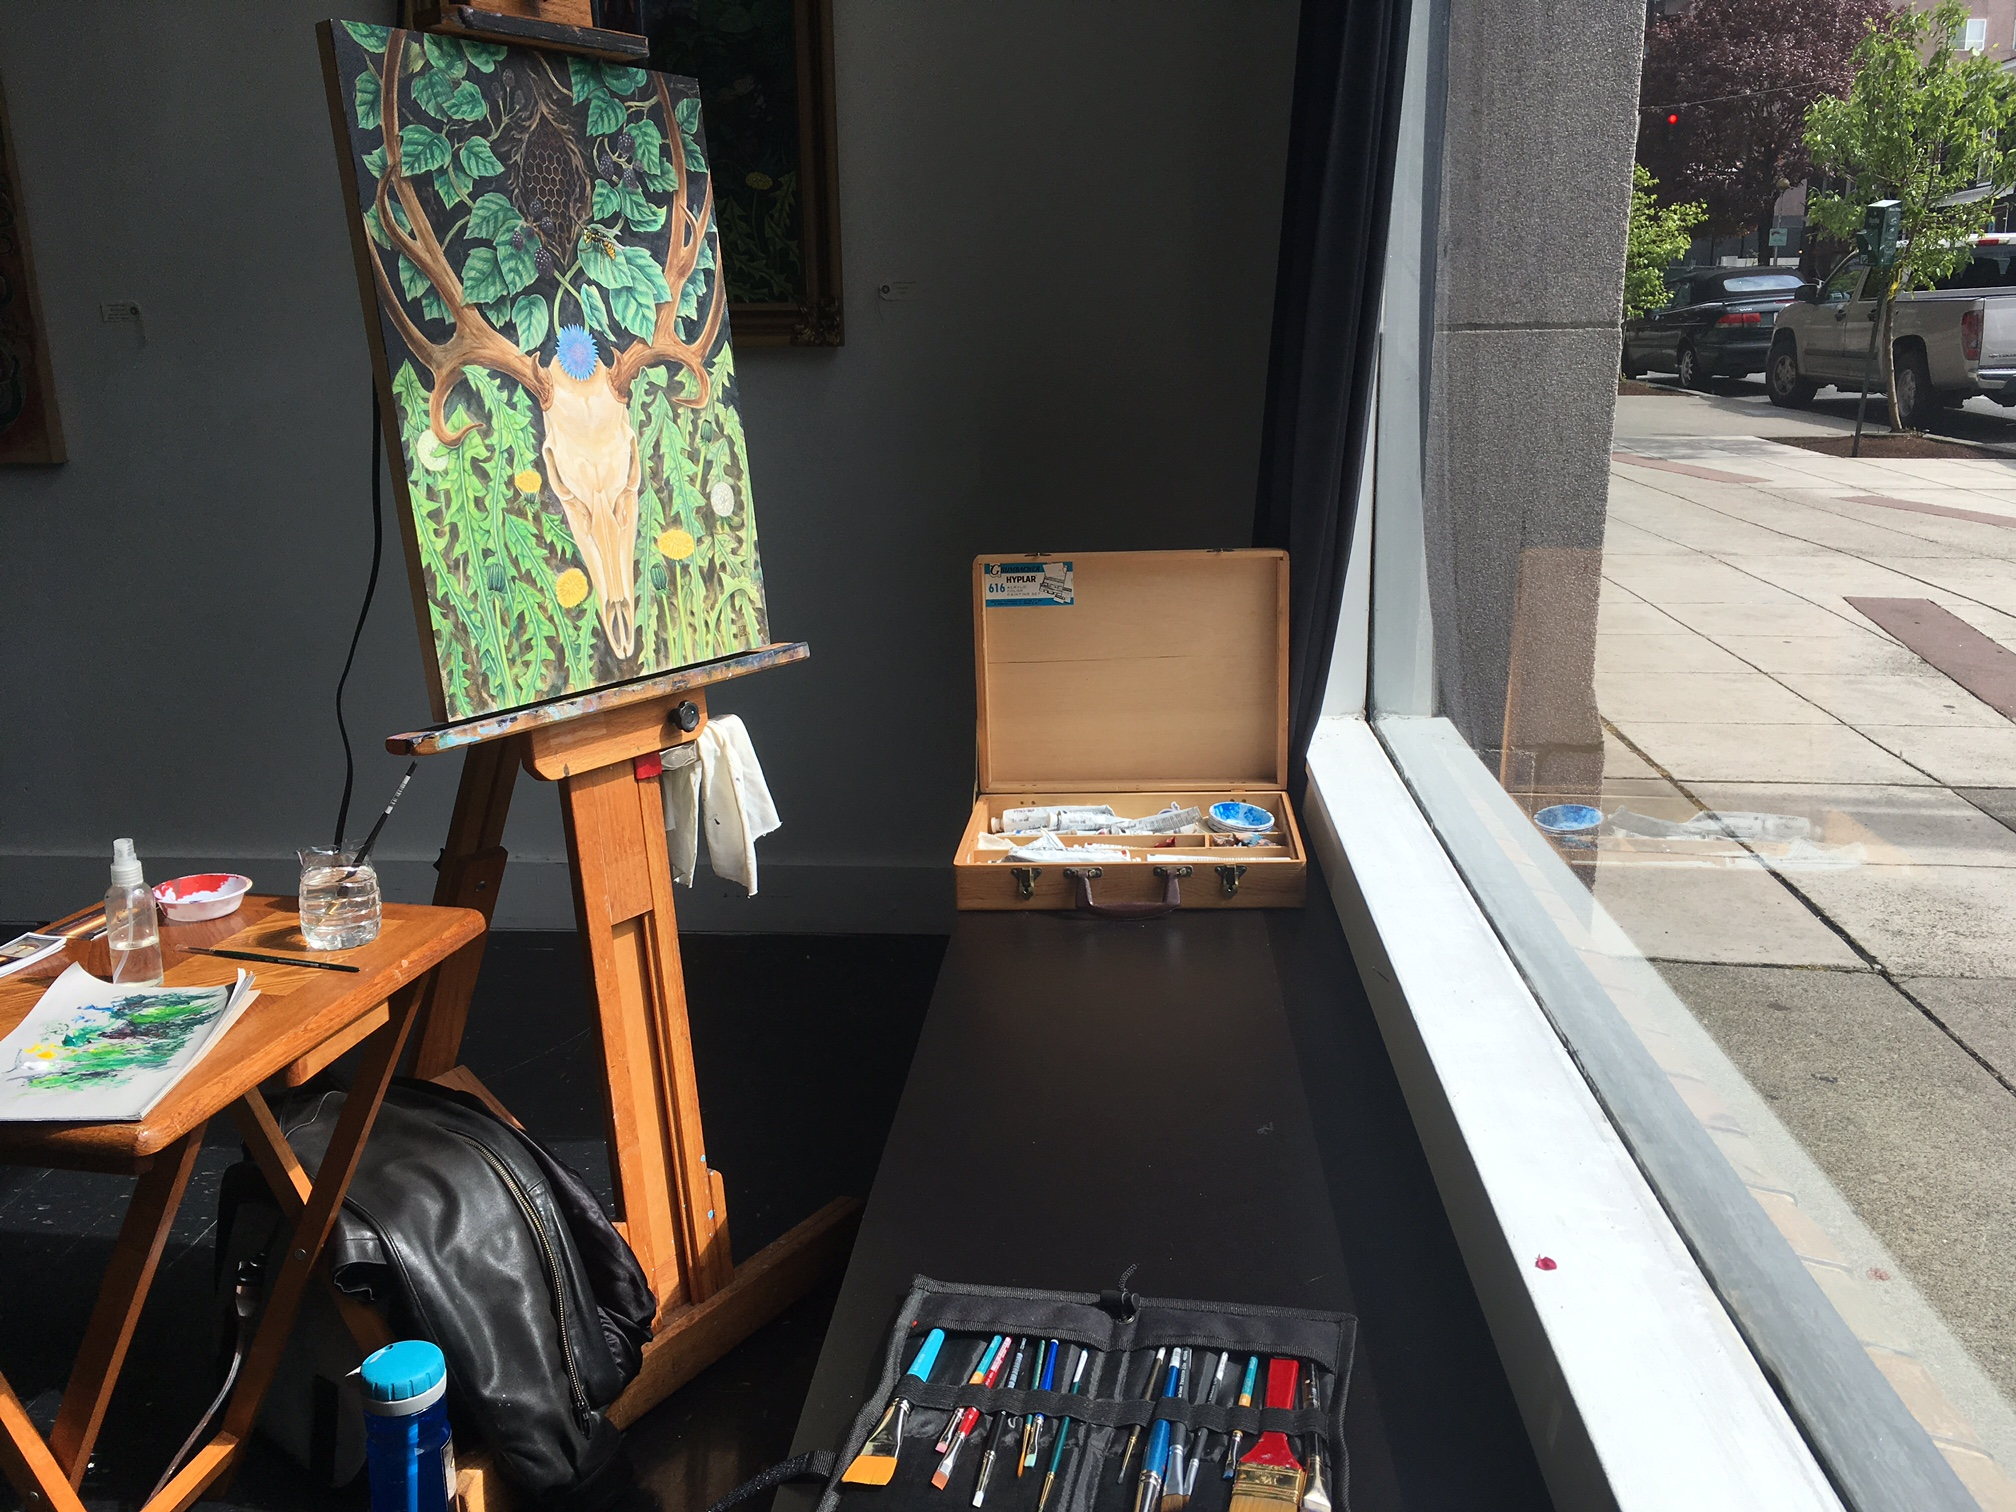 Painting and getting some sunshine at the same time.